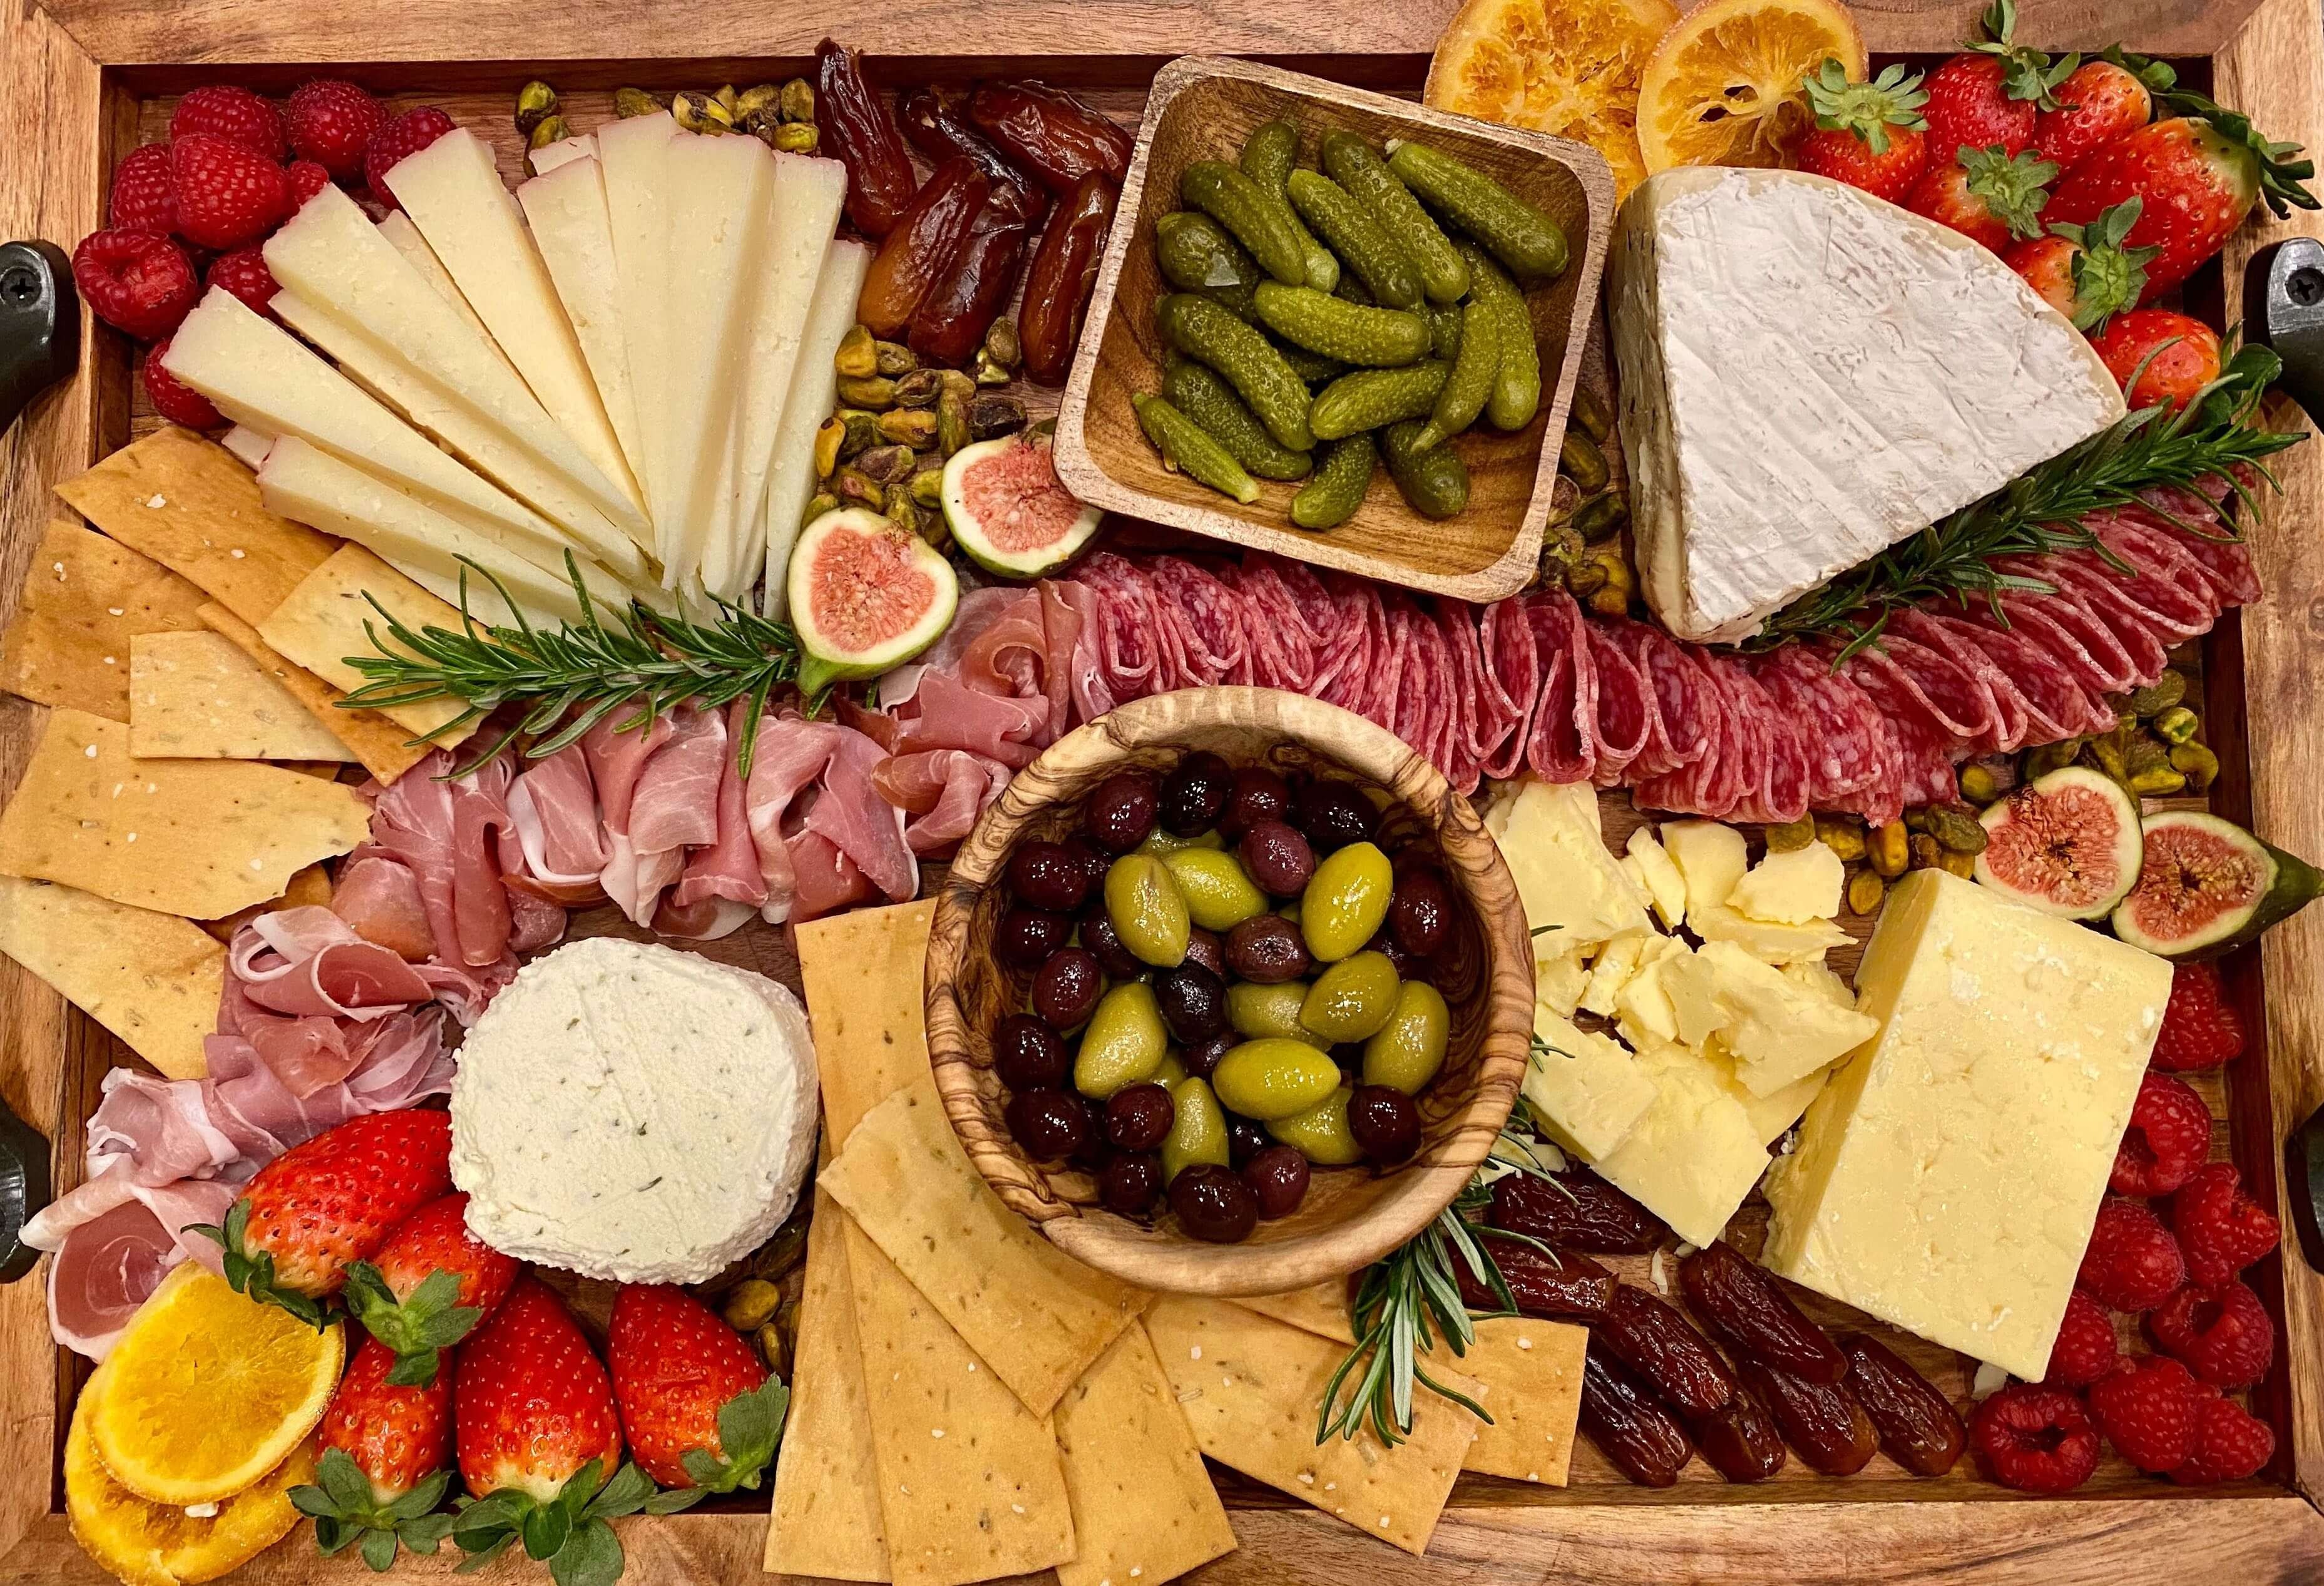 A photo of a charcuterie board